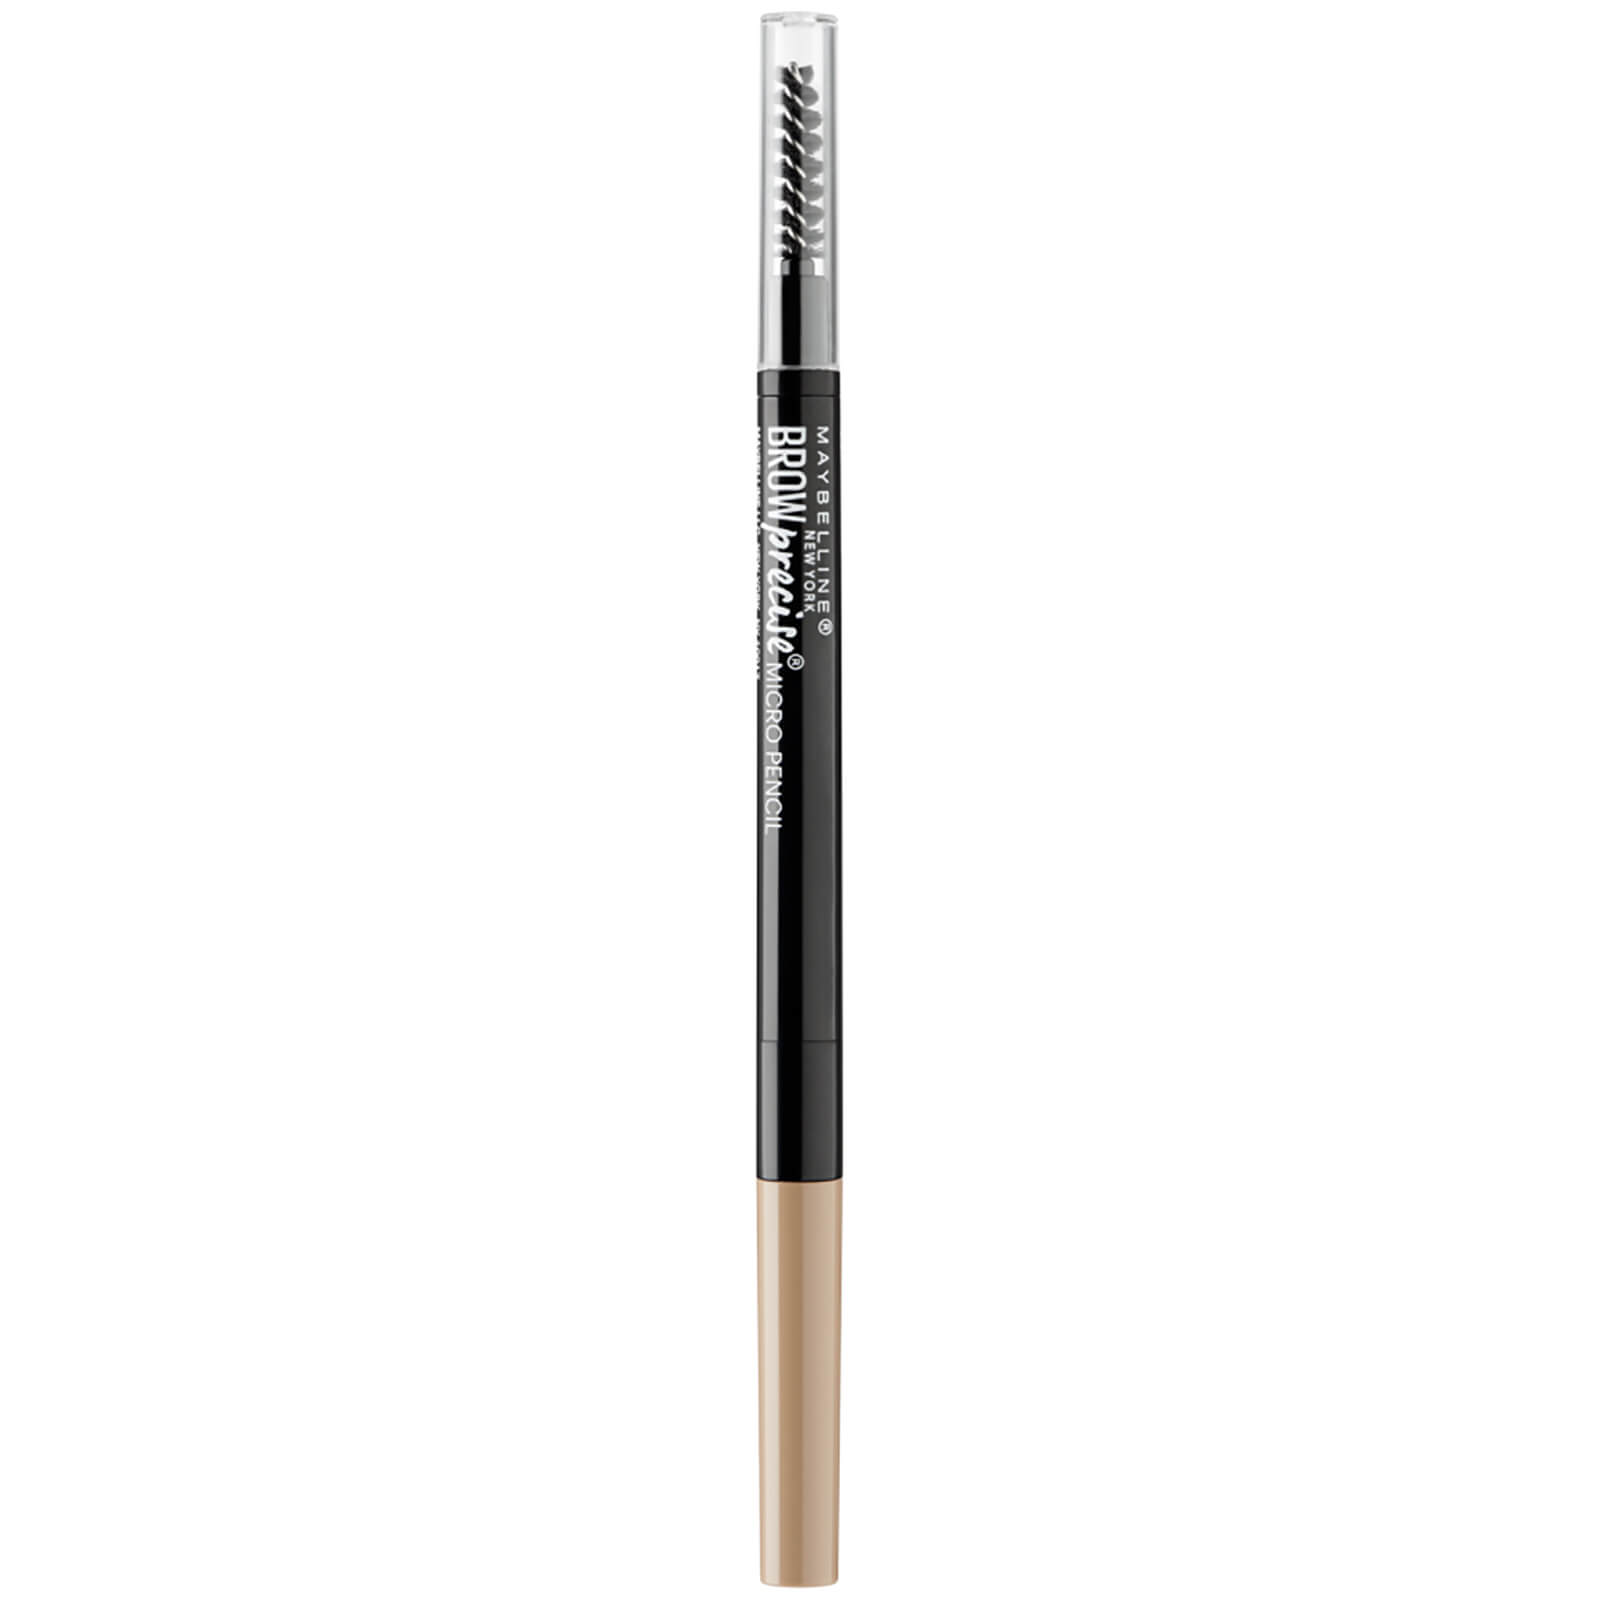 07a27871729 Maybelline Brow Precise Micro Pencil (Various Shades) | Free Shipping |  Lookfantastic